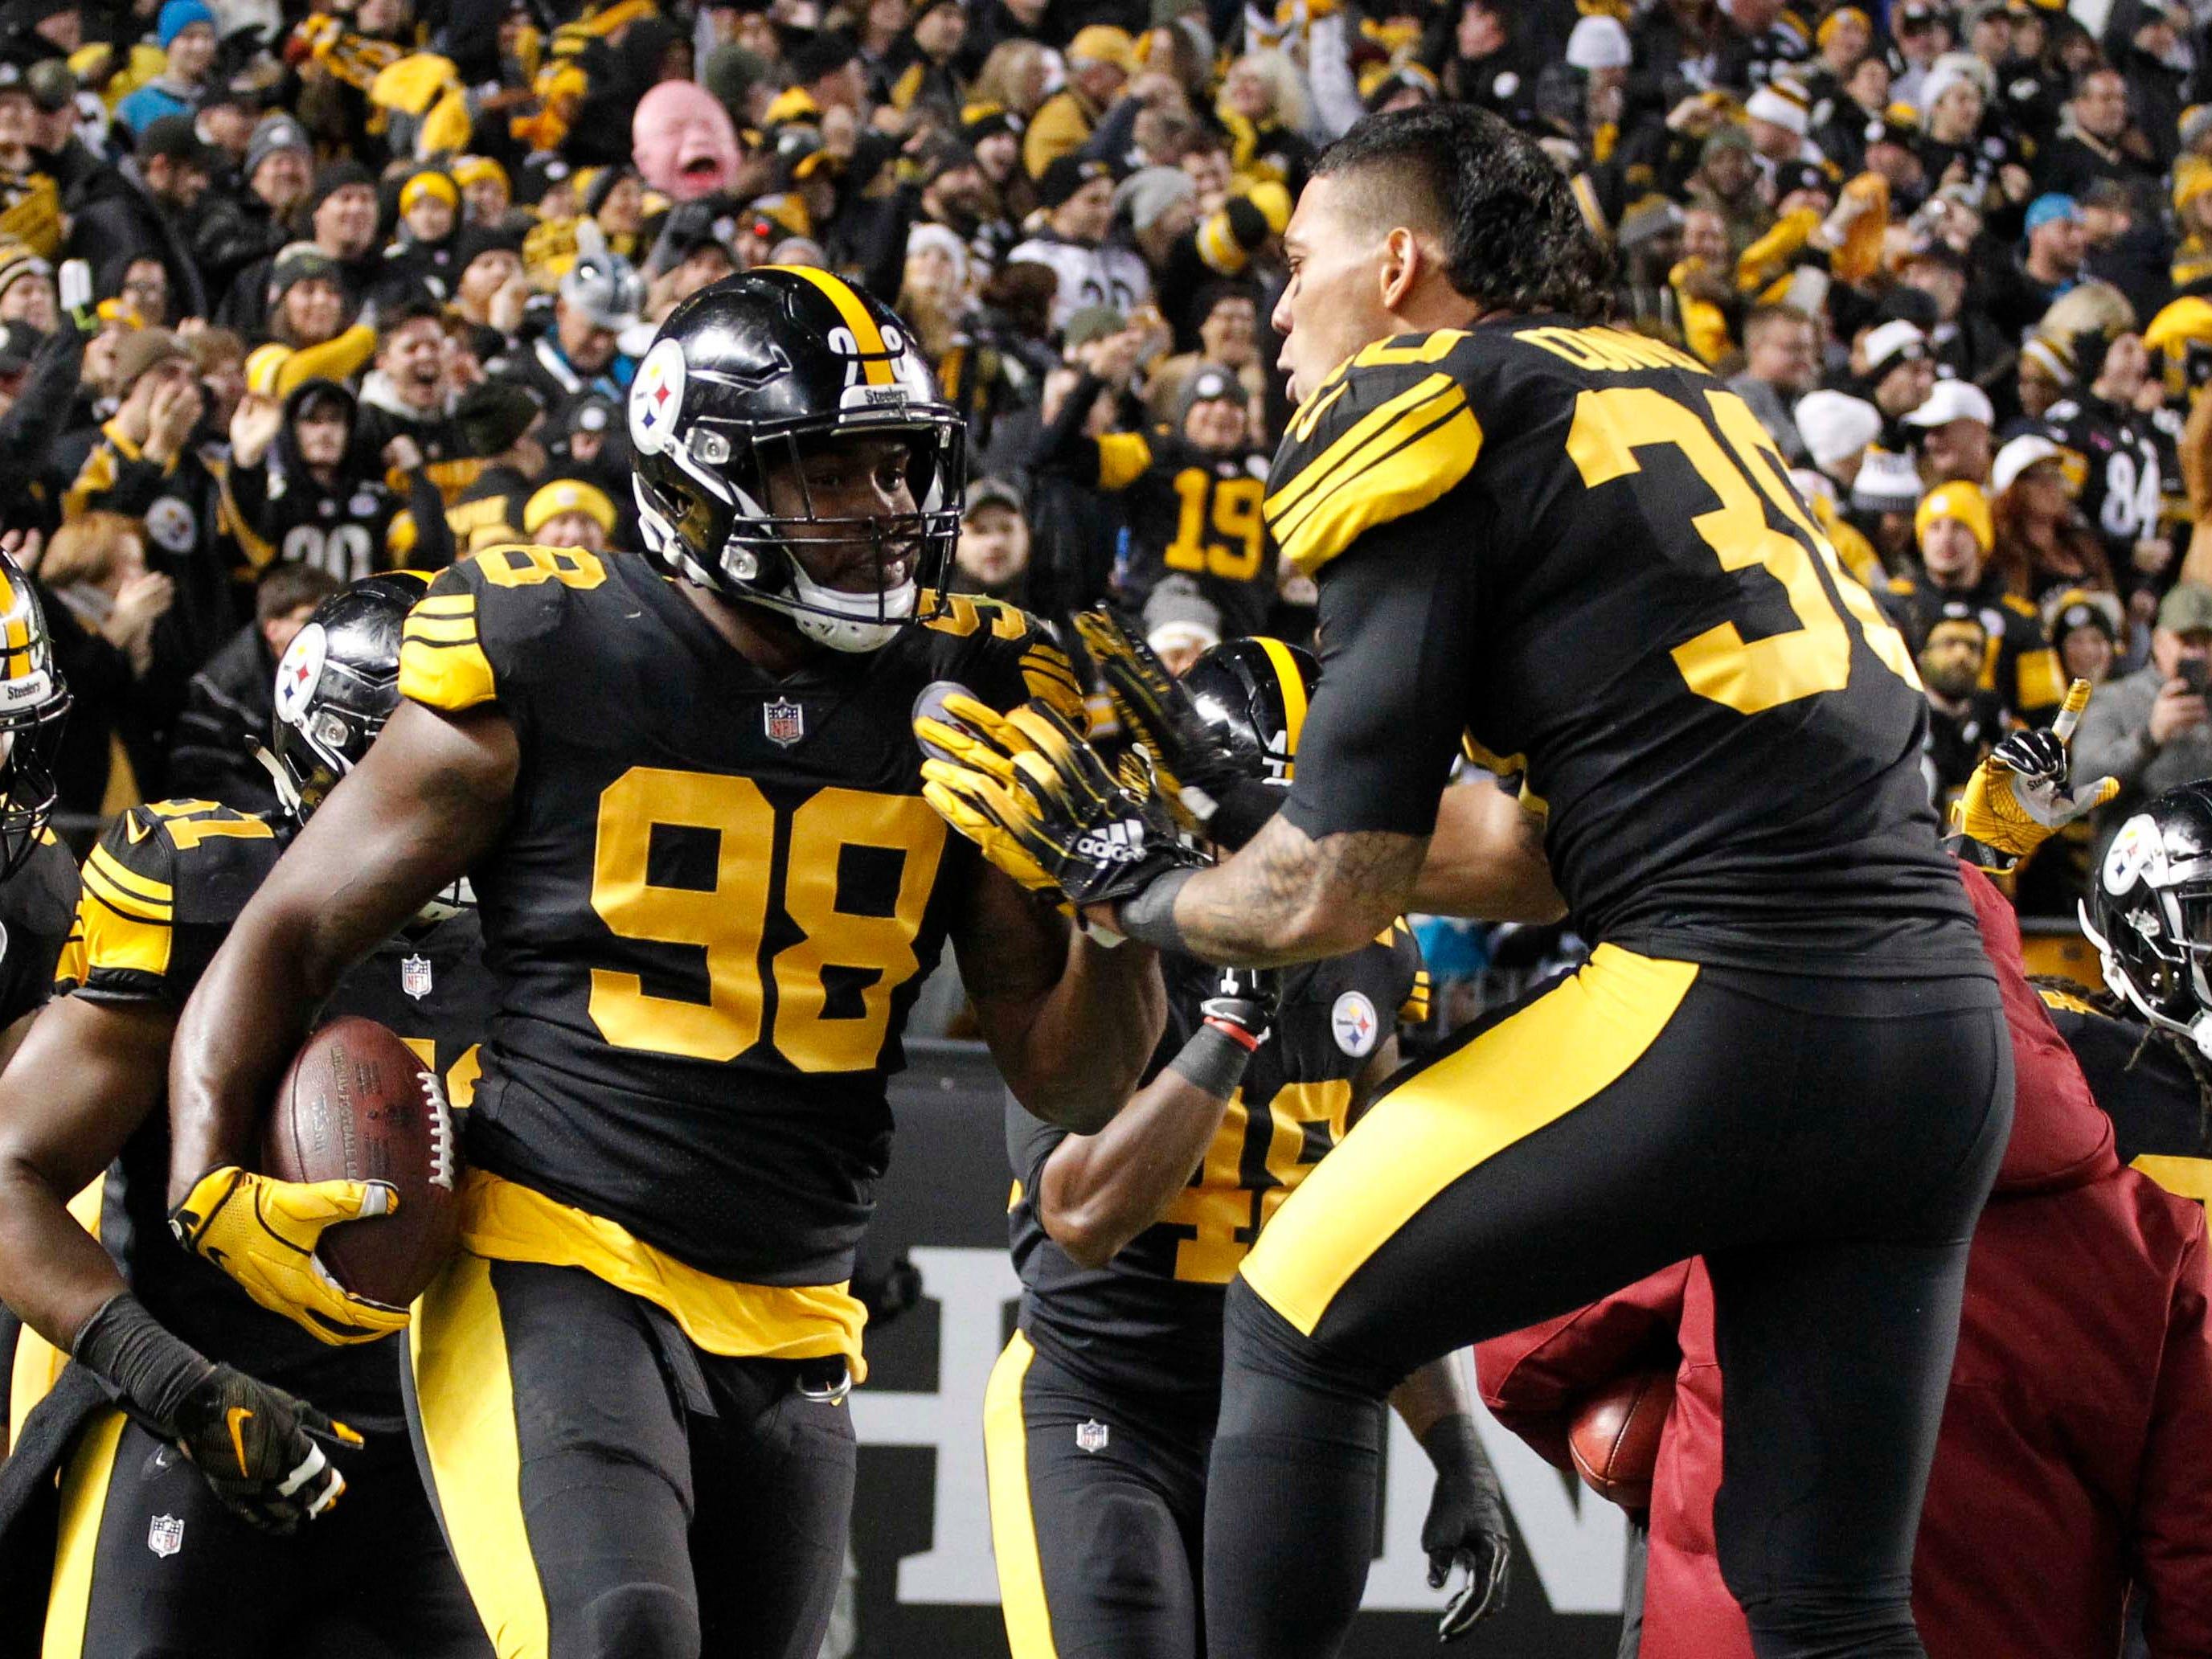 Pittsburgh Steelers running back James Conner congratulates inside linebacker Vince Williams (98) on his touchdown against the Carolina Panthers during the first quarter at Heinz Field.